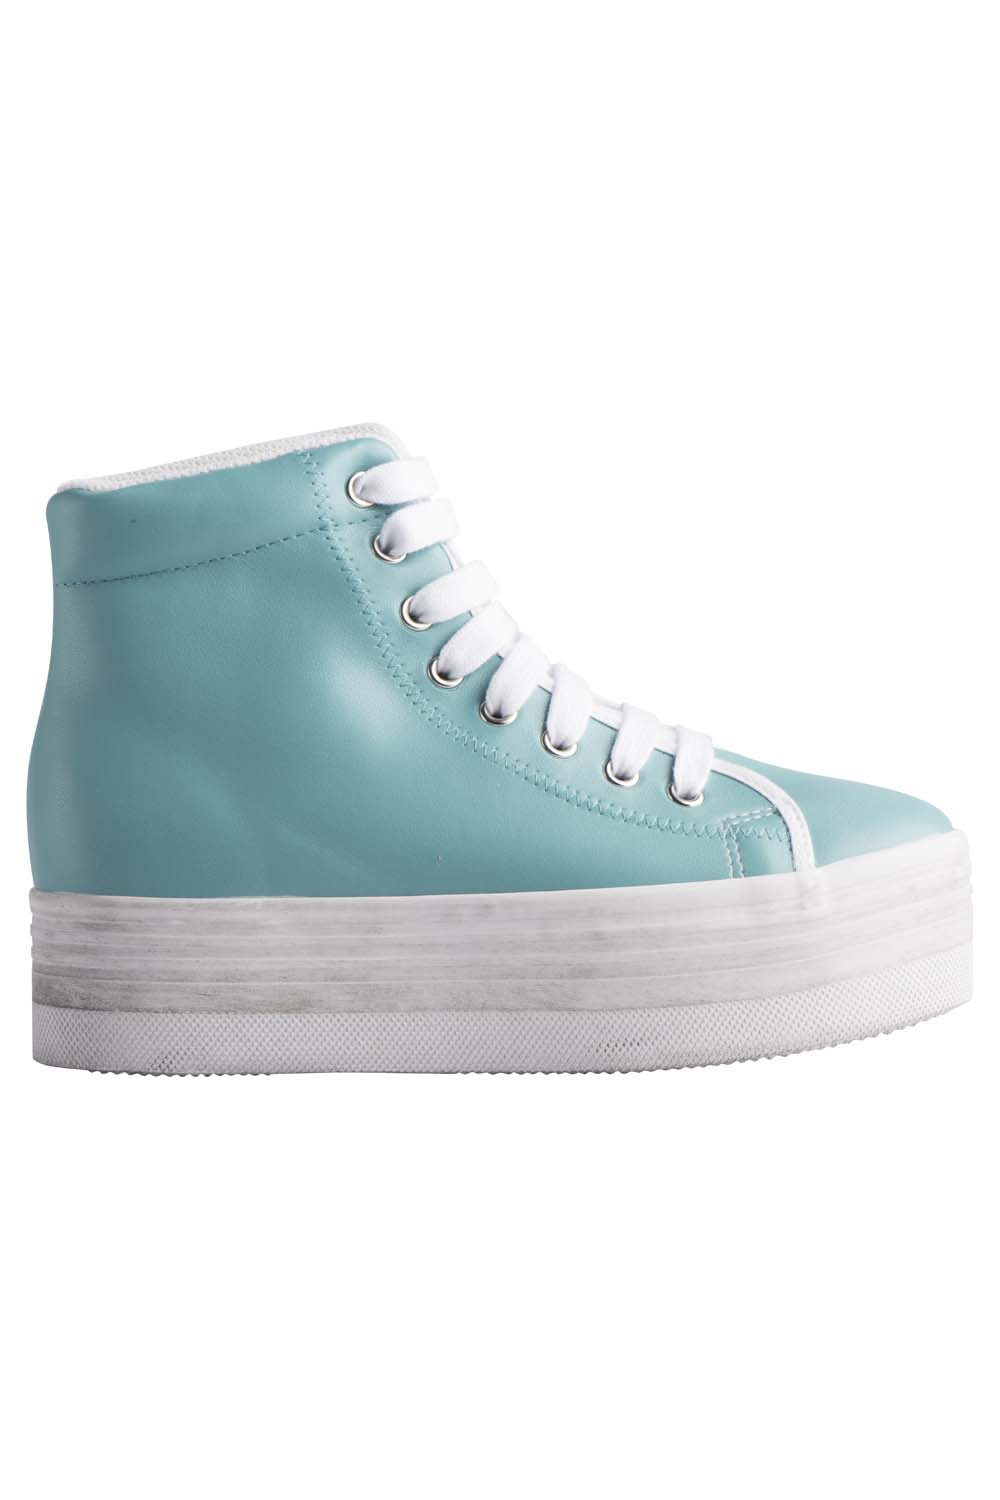 JEFFREY CAMPBELL SNEAKERS - HOMG TURQUOISE LEATHER.jpg